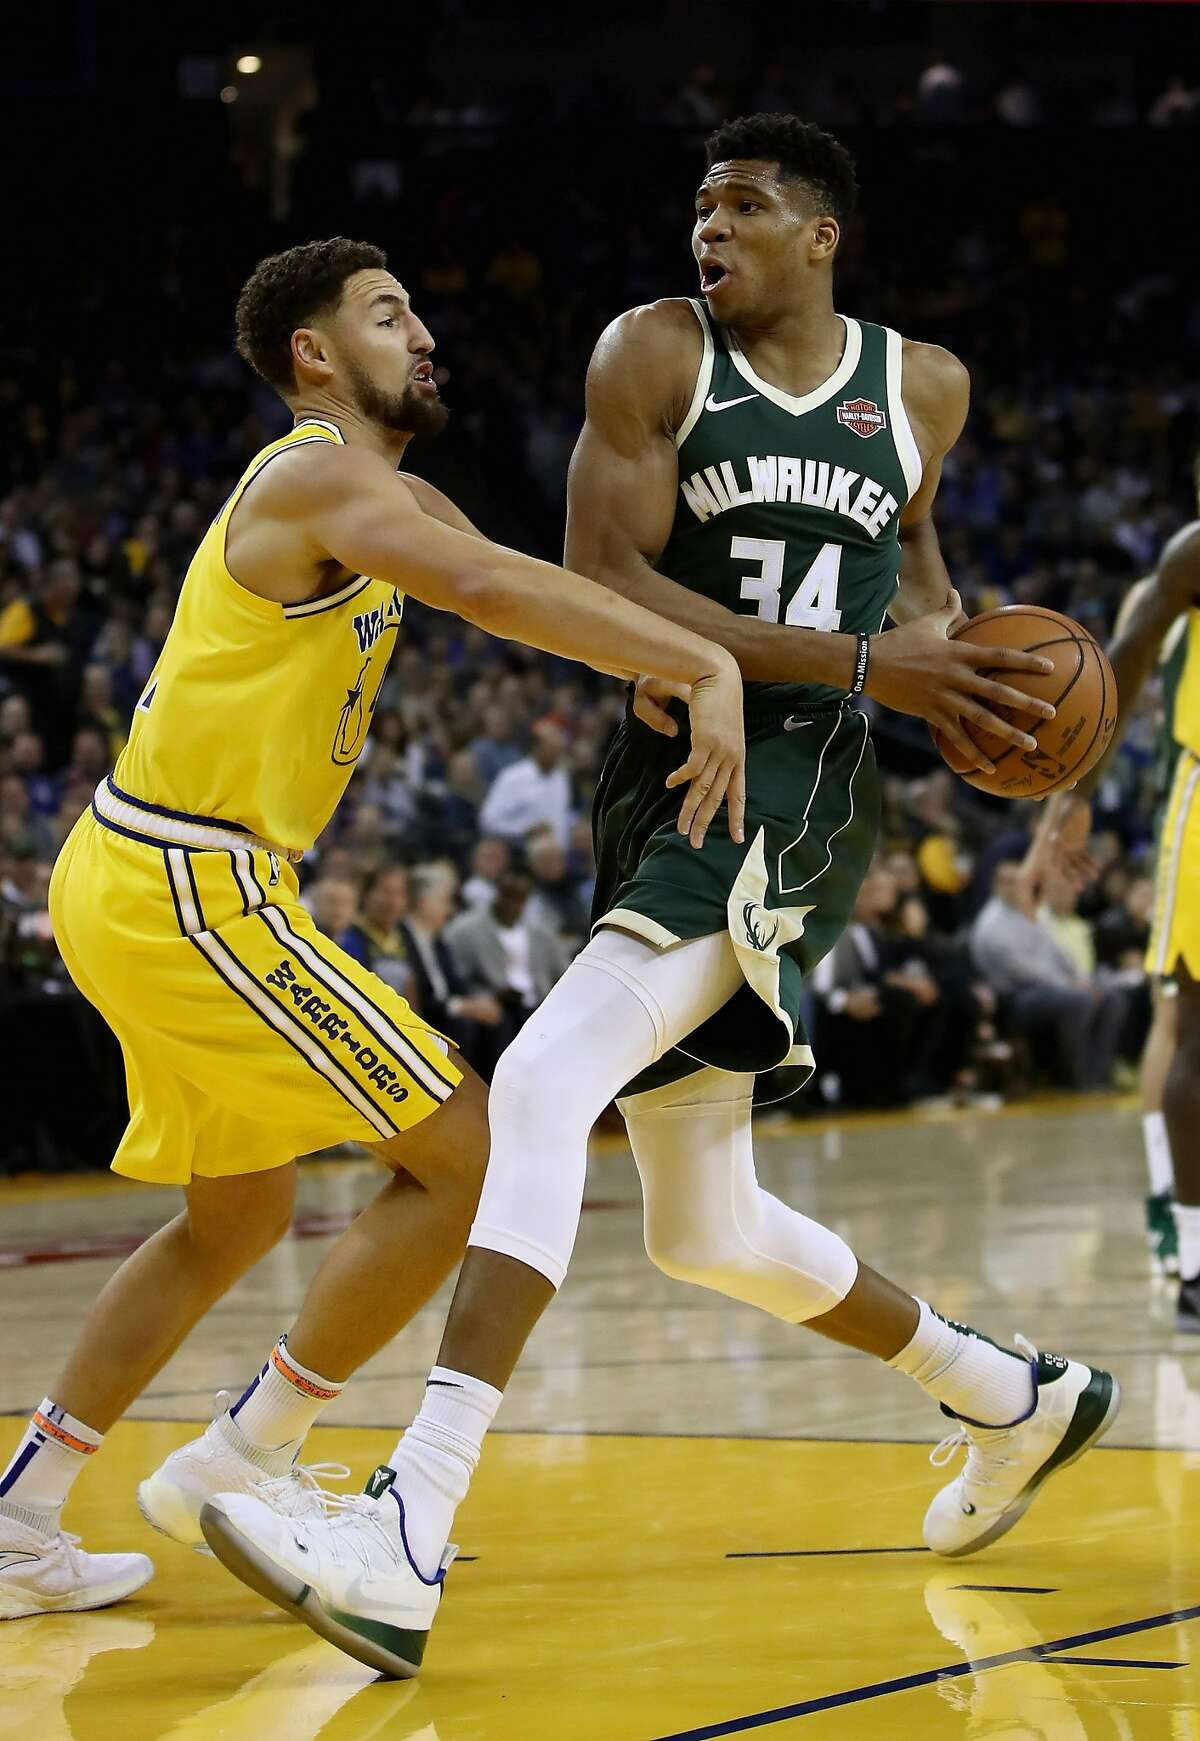 OAKLAND, CA - NOVEMBER 08: Giannis Antetokounmpo #34 of the Milwaukee Bucks drives on Klay Thompson #11 of the Golden State Warriors at ORACLE Arena on November 8, 2018 in Oakland, California. NOTE TO USER: User expressly acknowledges and agrees that, b